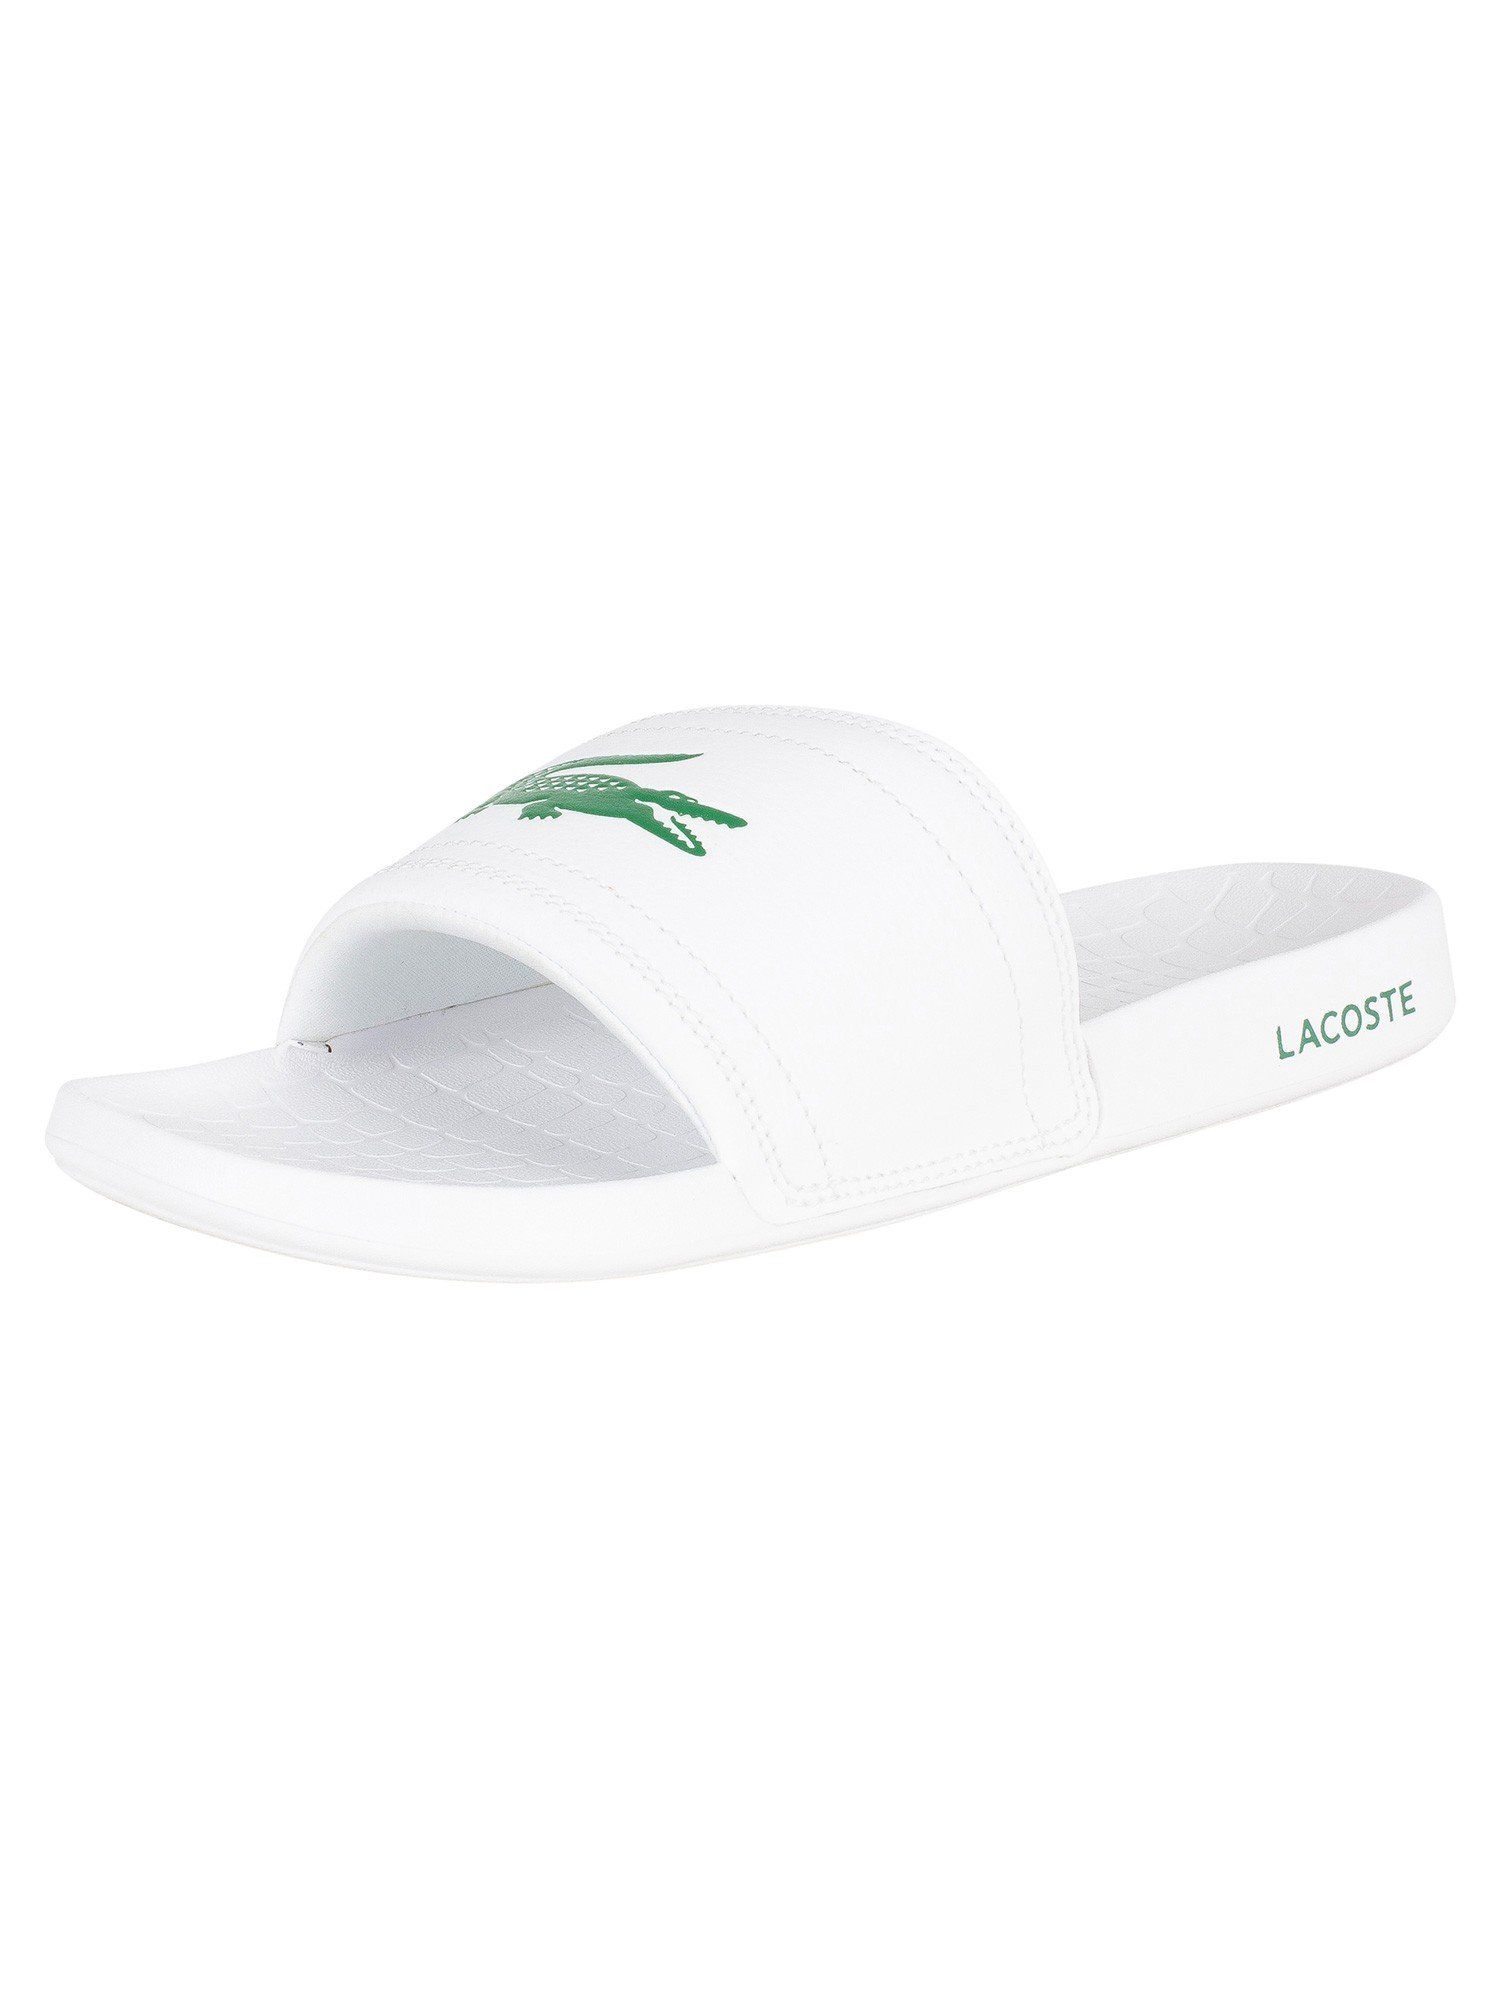 Lacoste Men's Fraisier Crocodile Detail Flip-Flops UK 9 White